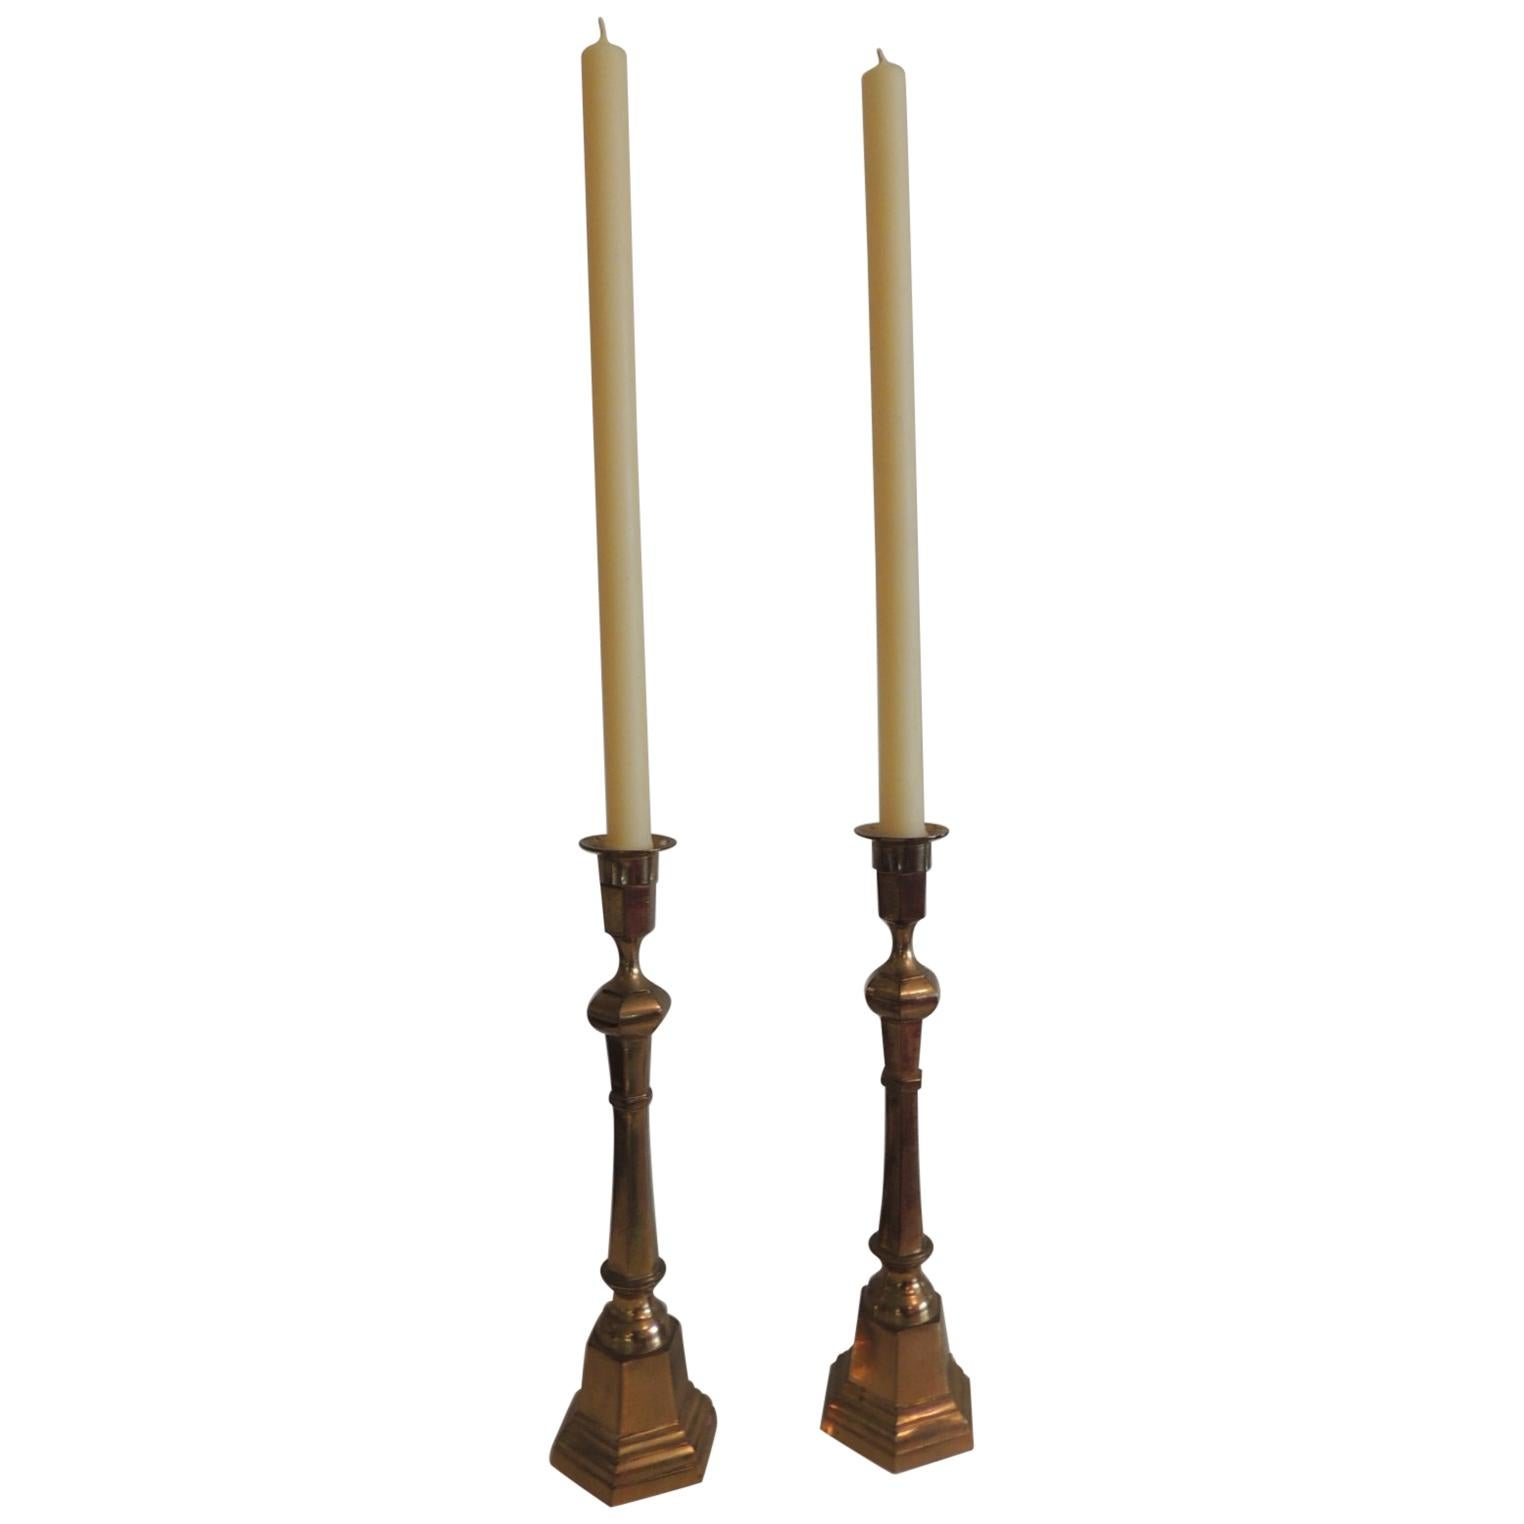 Pair of Brass German Vintage Candlesticks